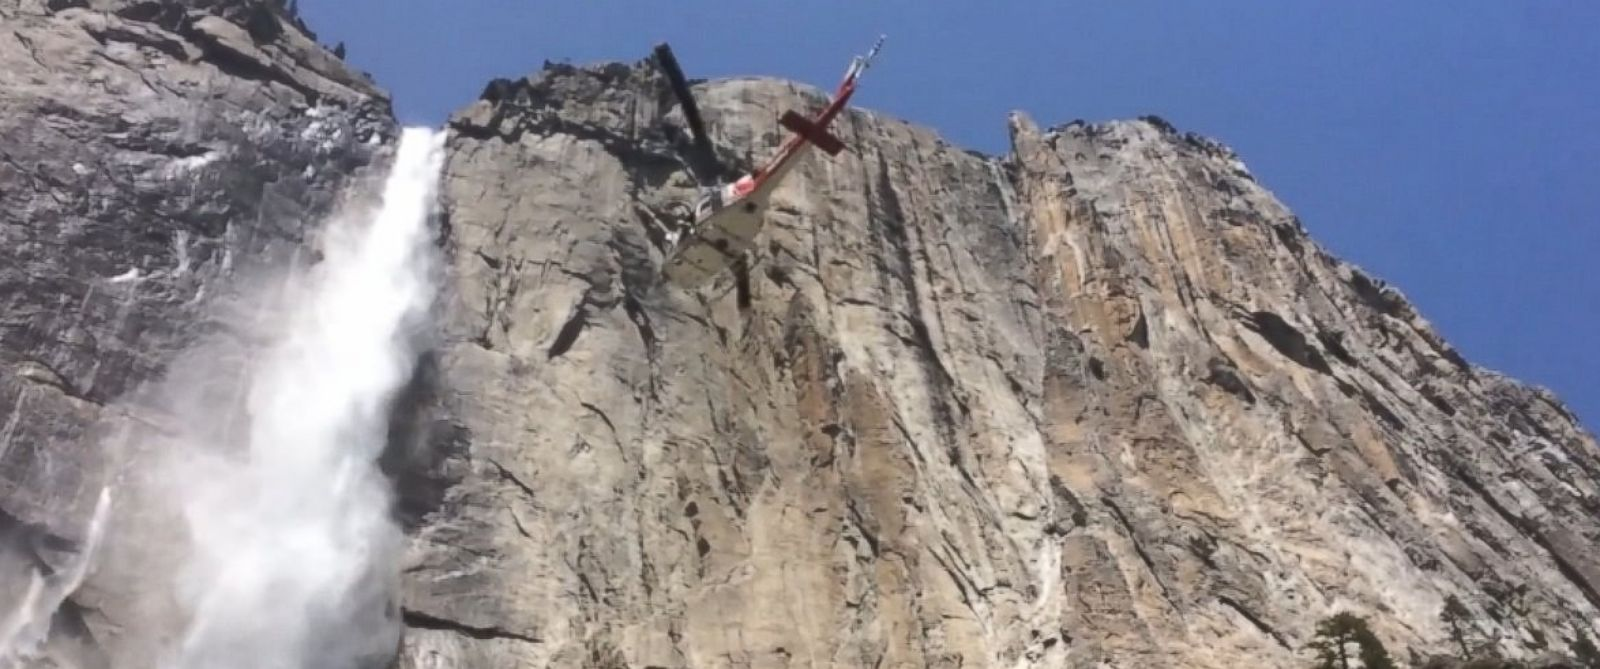 PHOTO: Video shows a helicopter team rescuing a stranded backpacker from the rapids at Yosemite National Park.